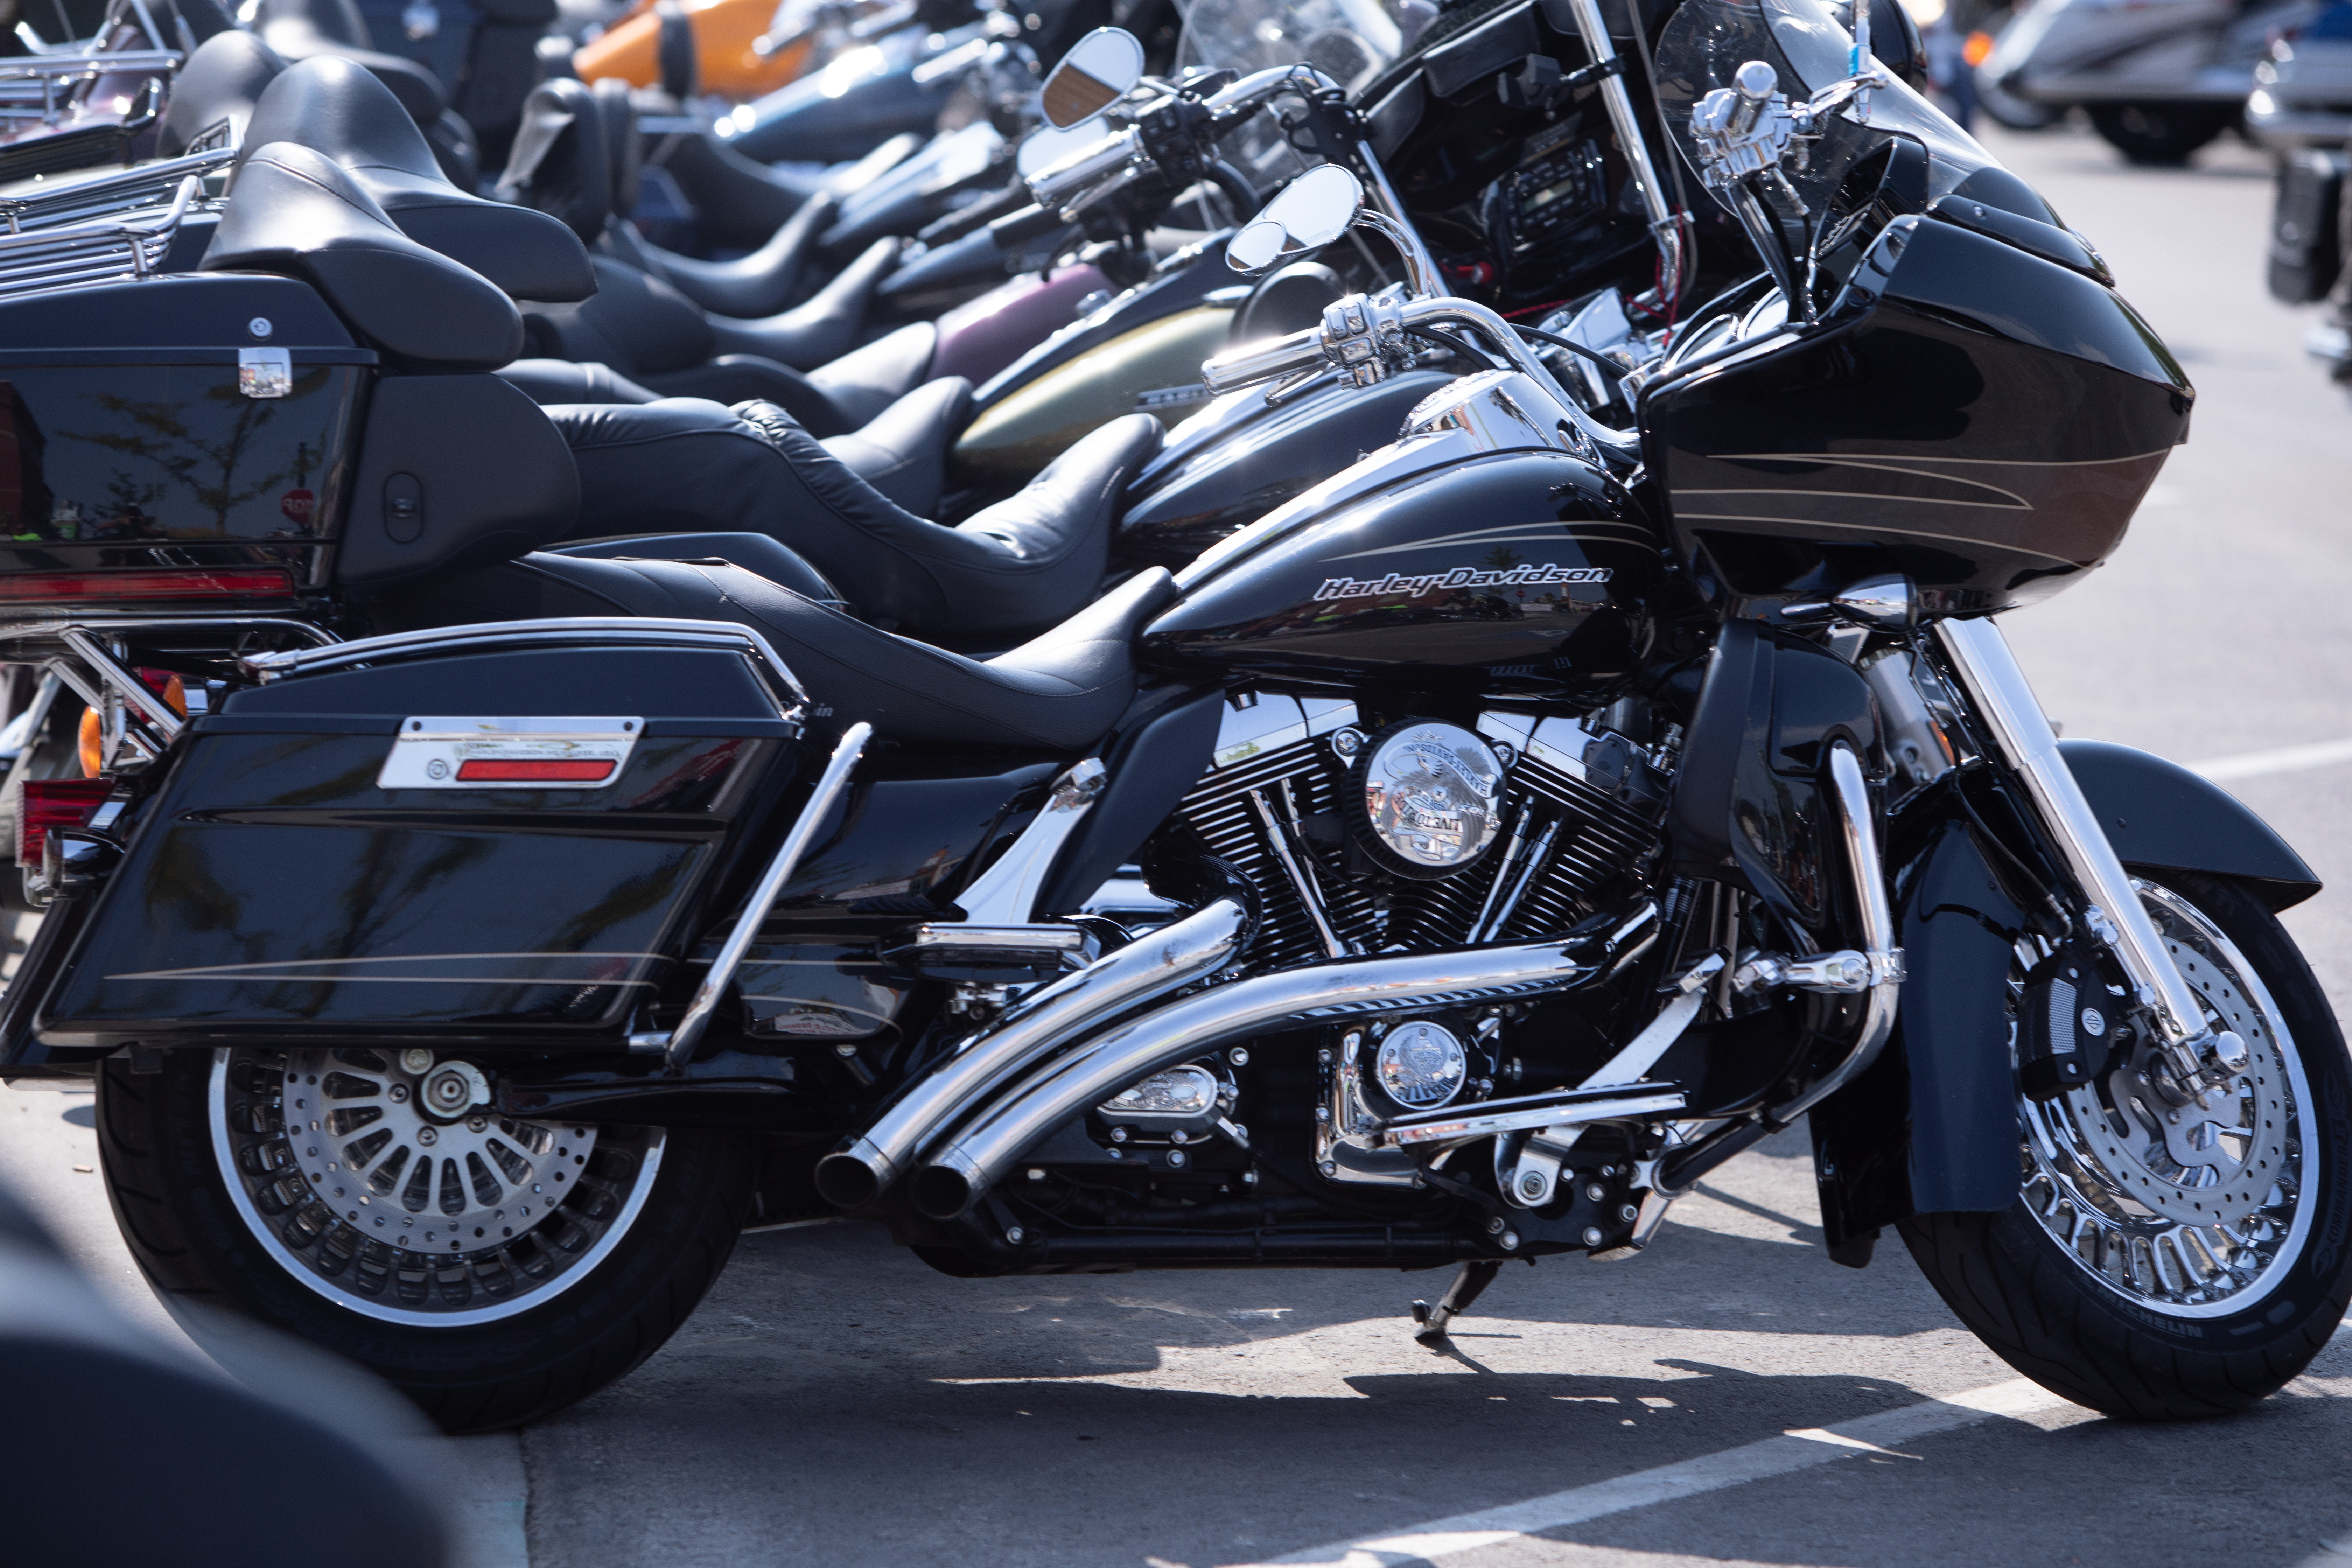 Need to sell a Harley fast? Check out RumbleOn.